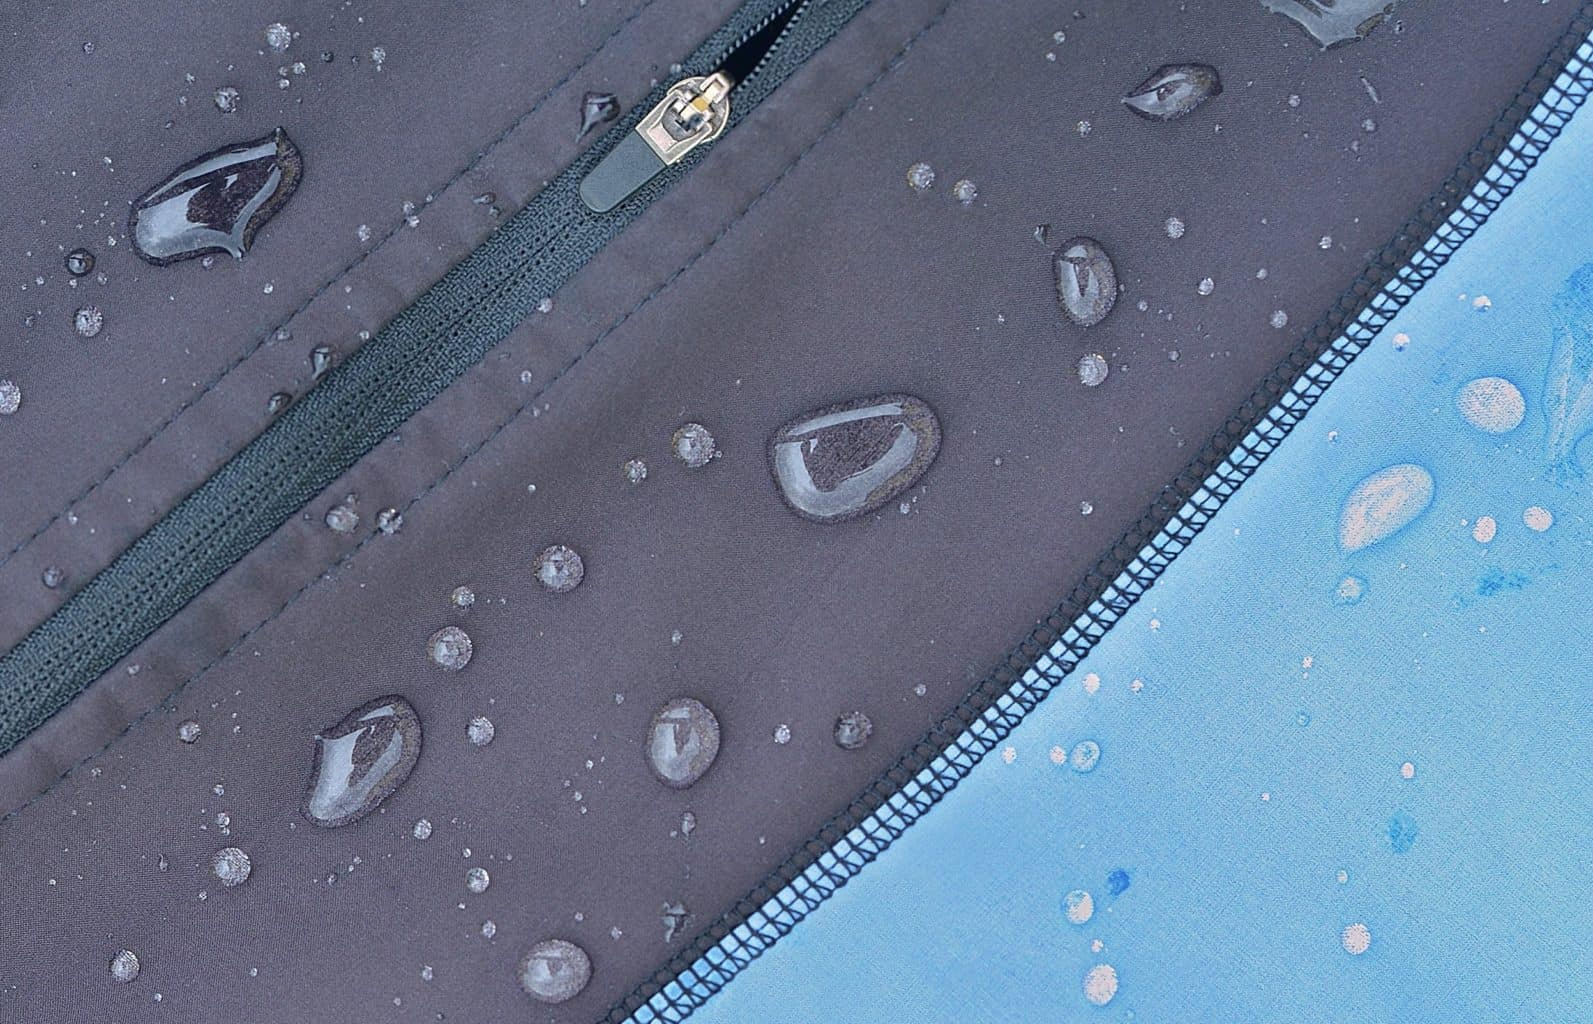 Detailed view of softshell jacket with water drops